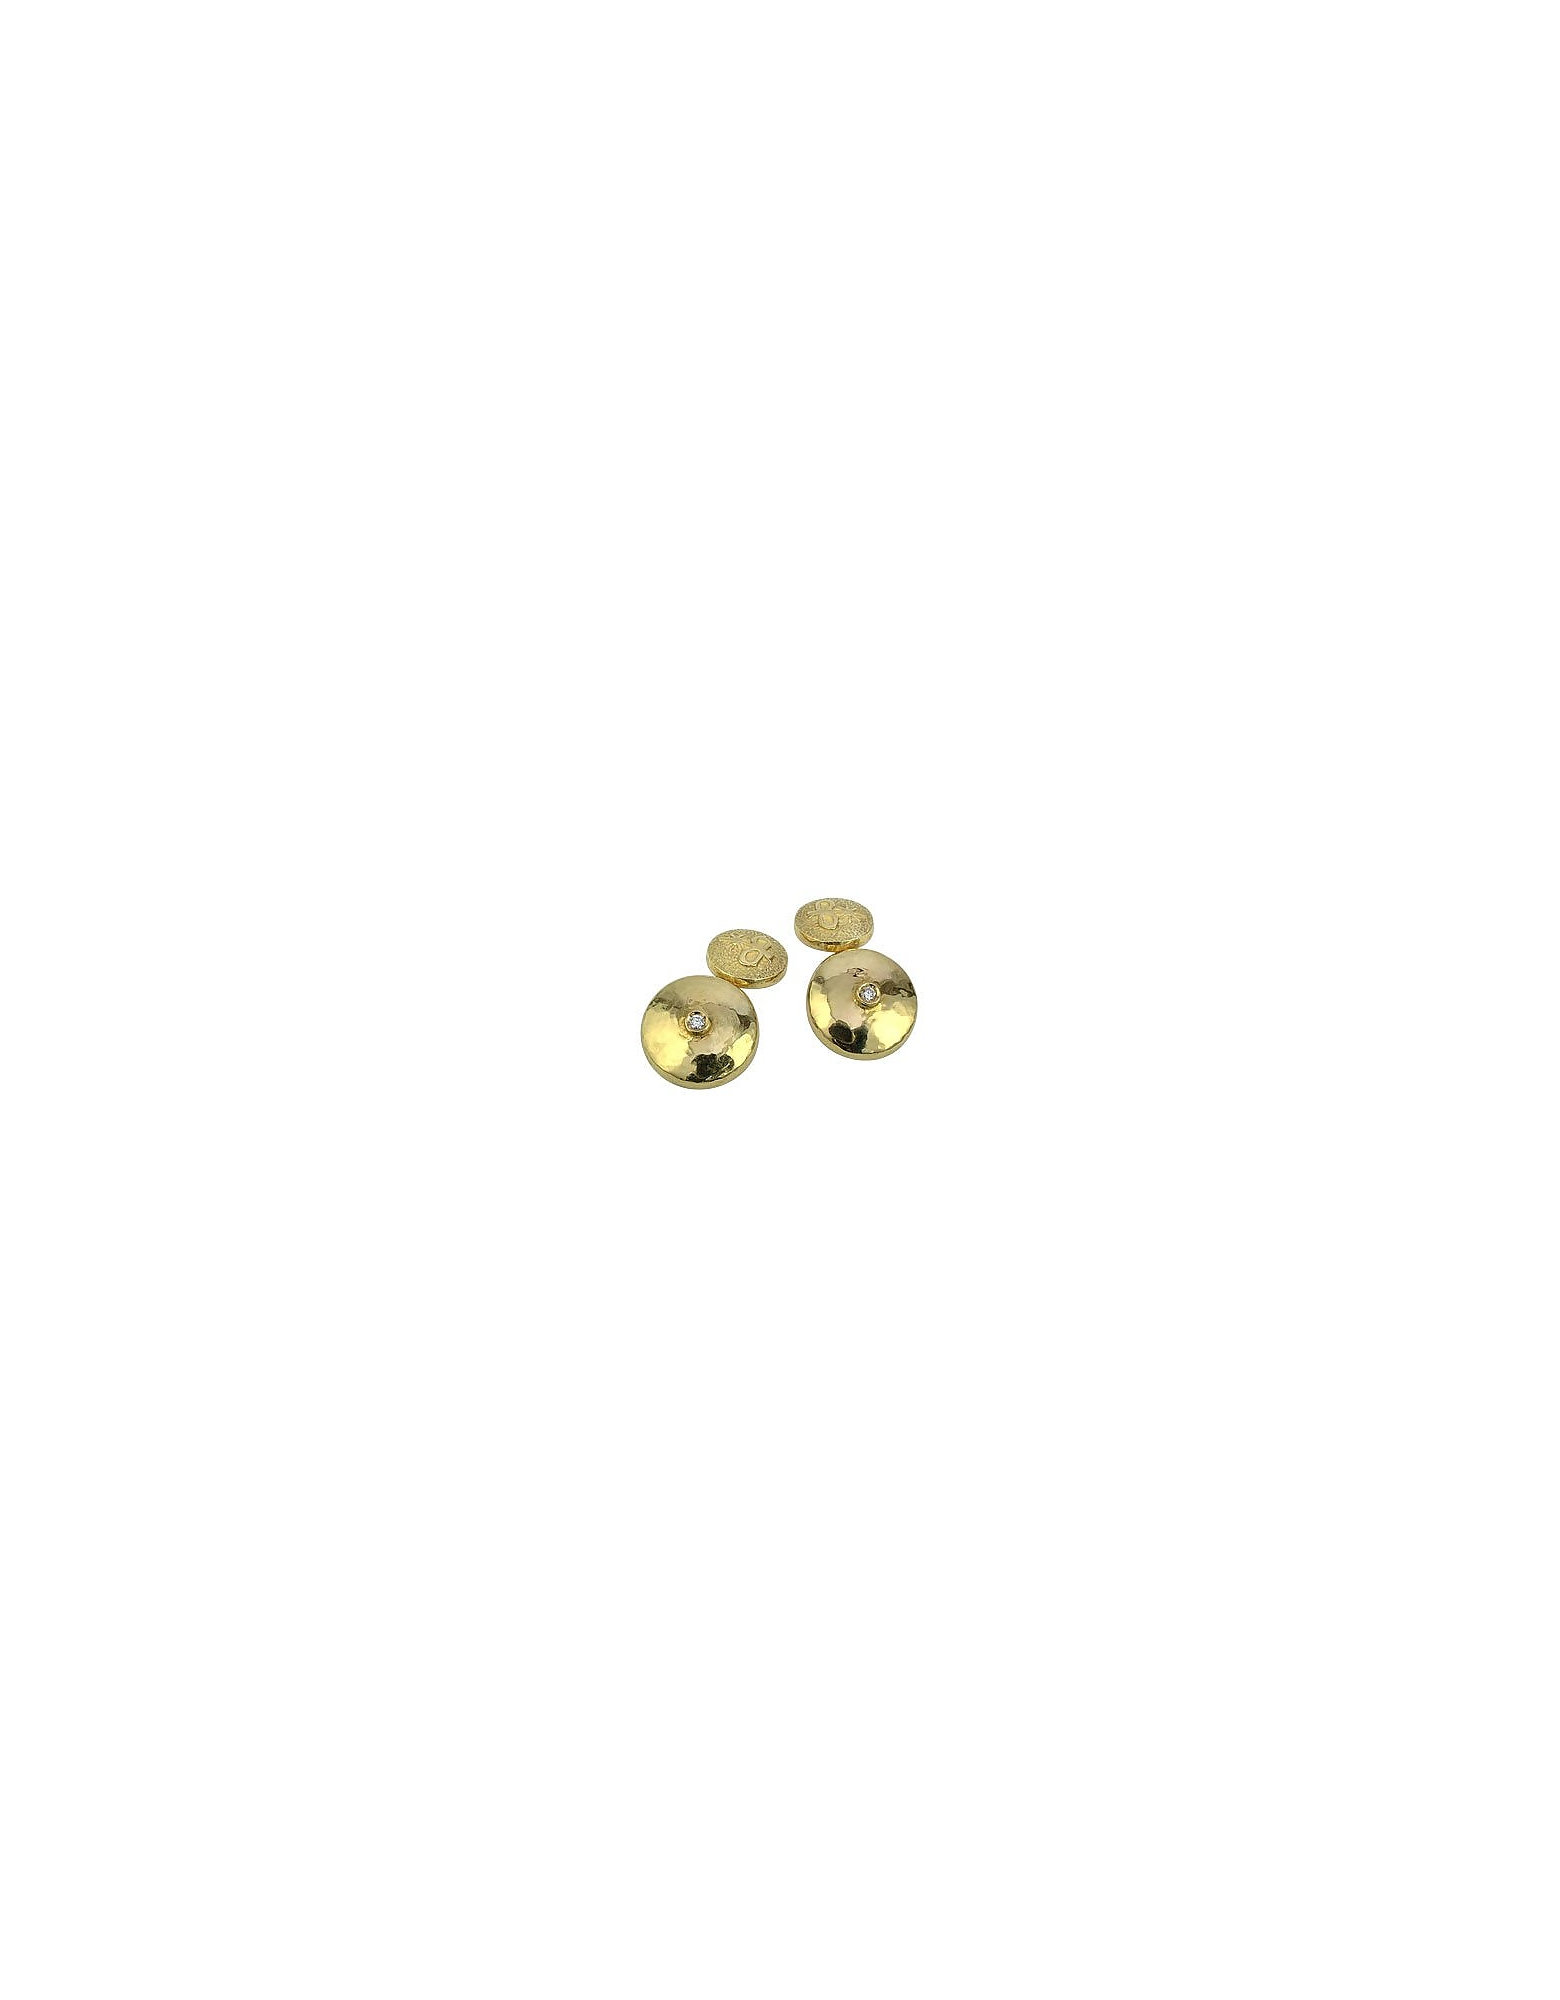 Torrini Cufflinks, 18K Yellow Gold Diamond Cufflinks